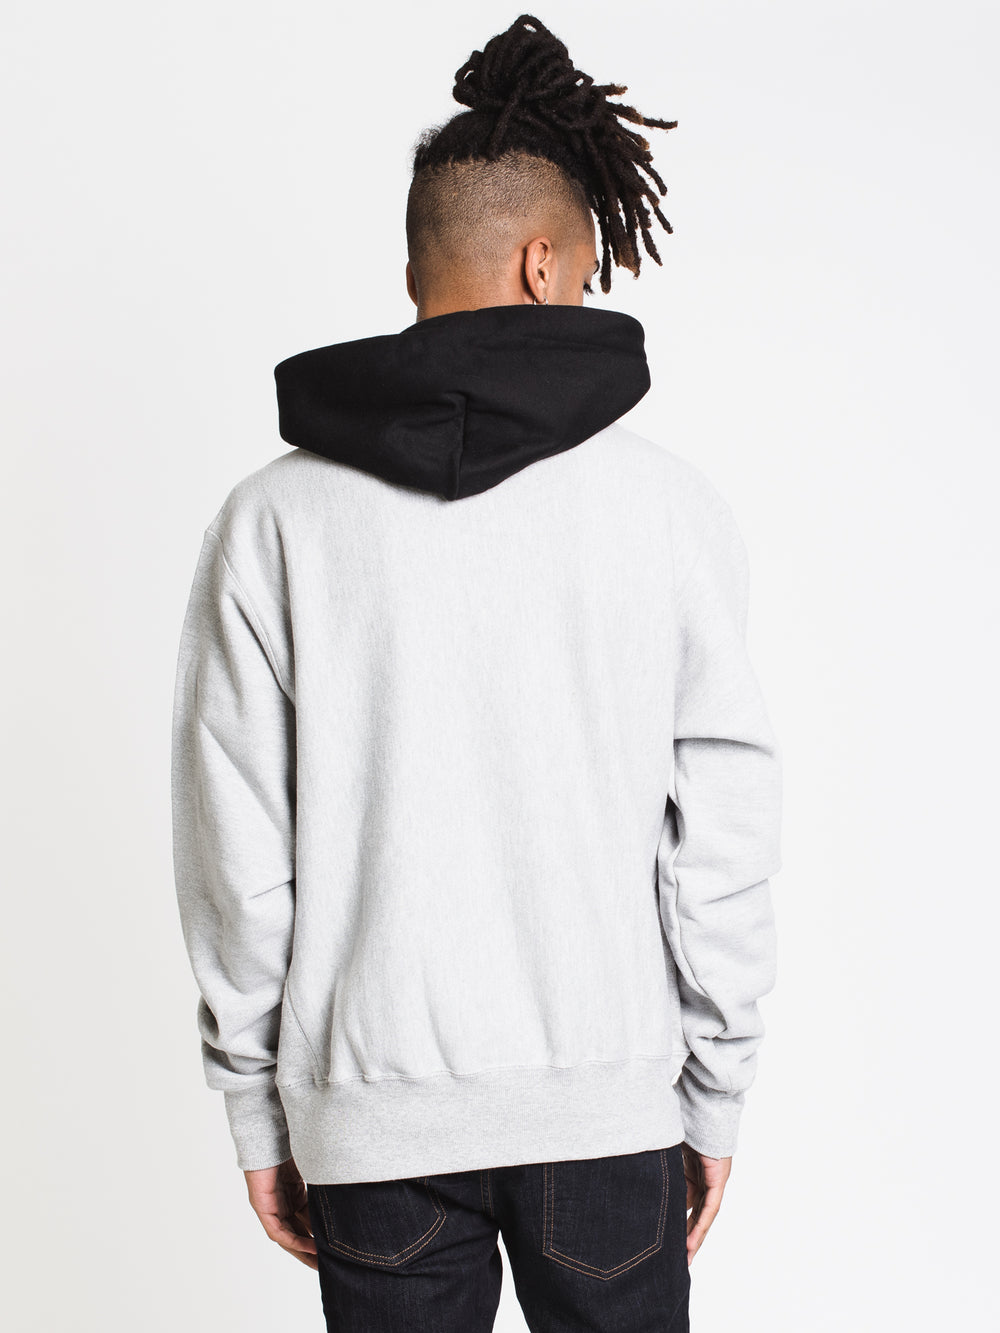 MENS RW COLOUR BLOCKPULL OVER HOODIE - GRY/BLK